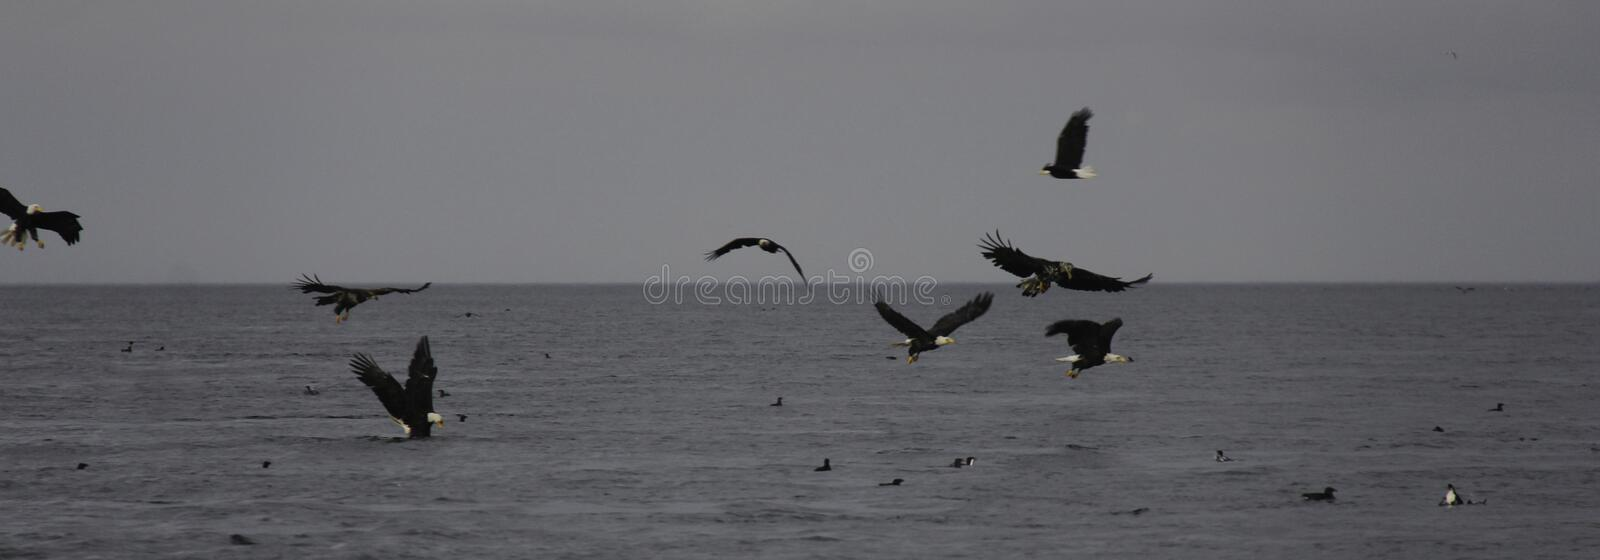 Bald Eagles Hunting. Juvenile and Adult Bald Eagles Hunting school of fish on the Pacific Ocean royalty free stock photography